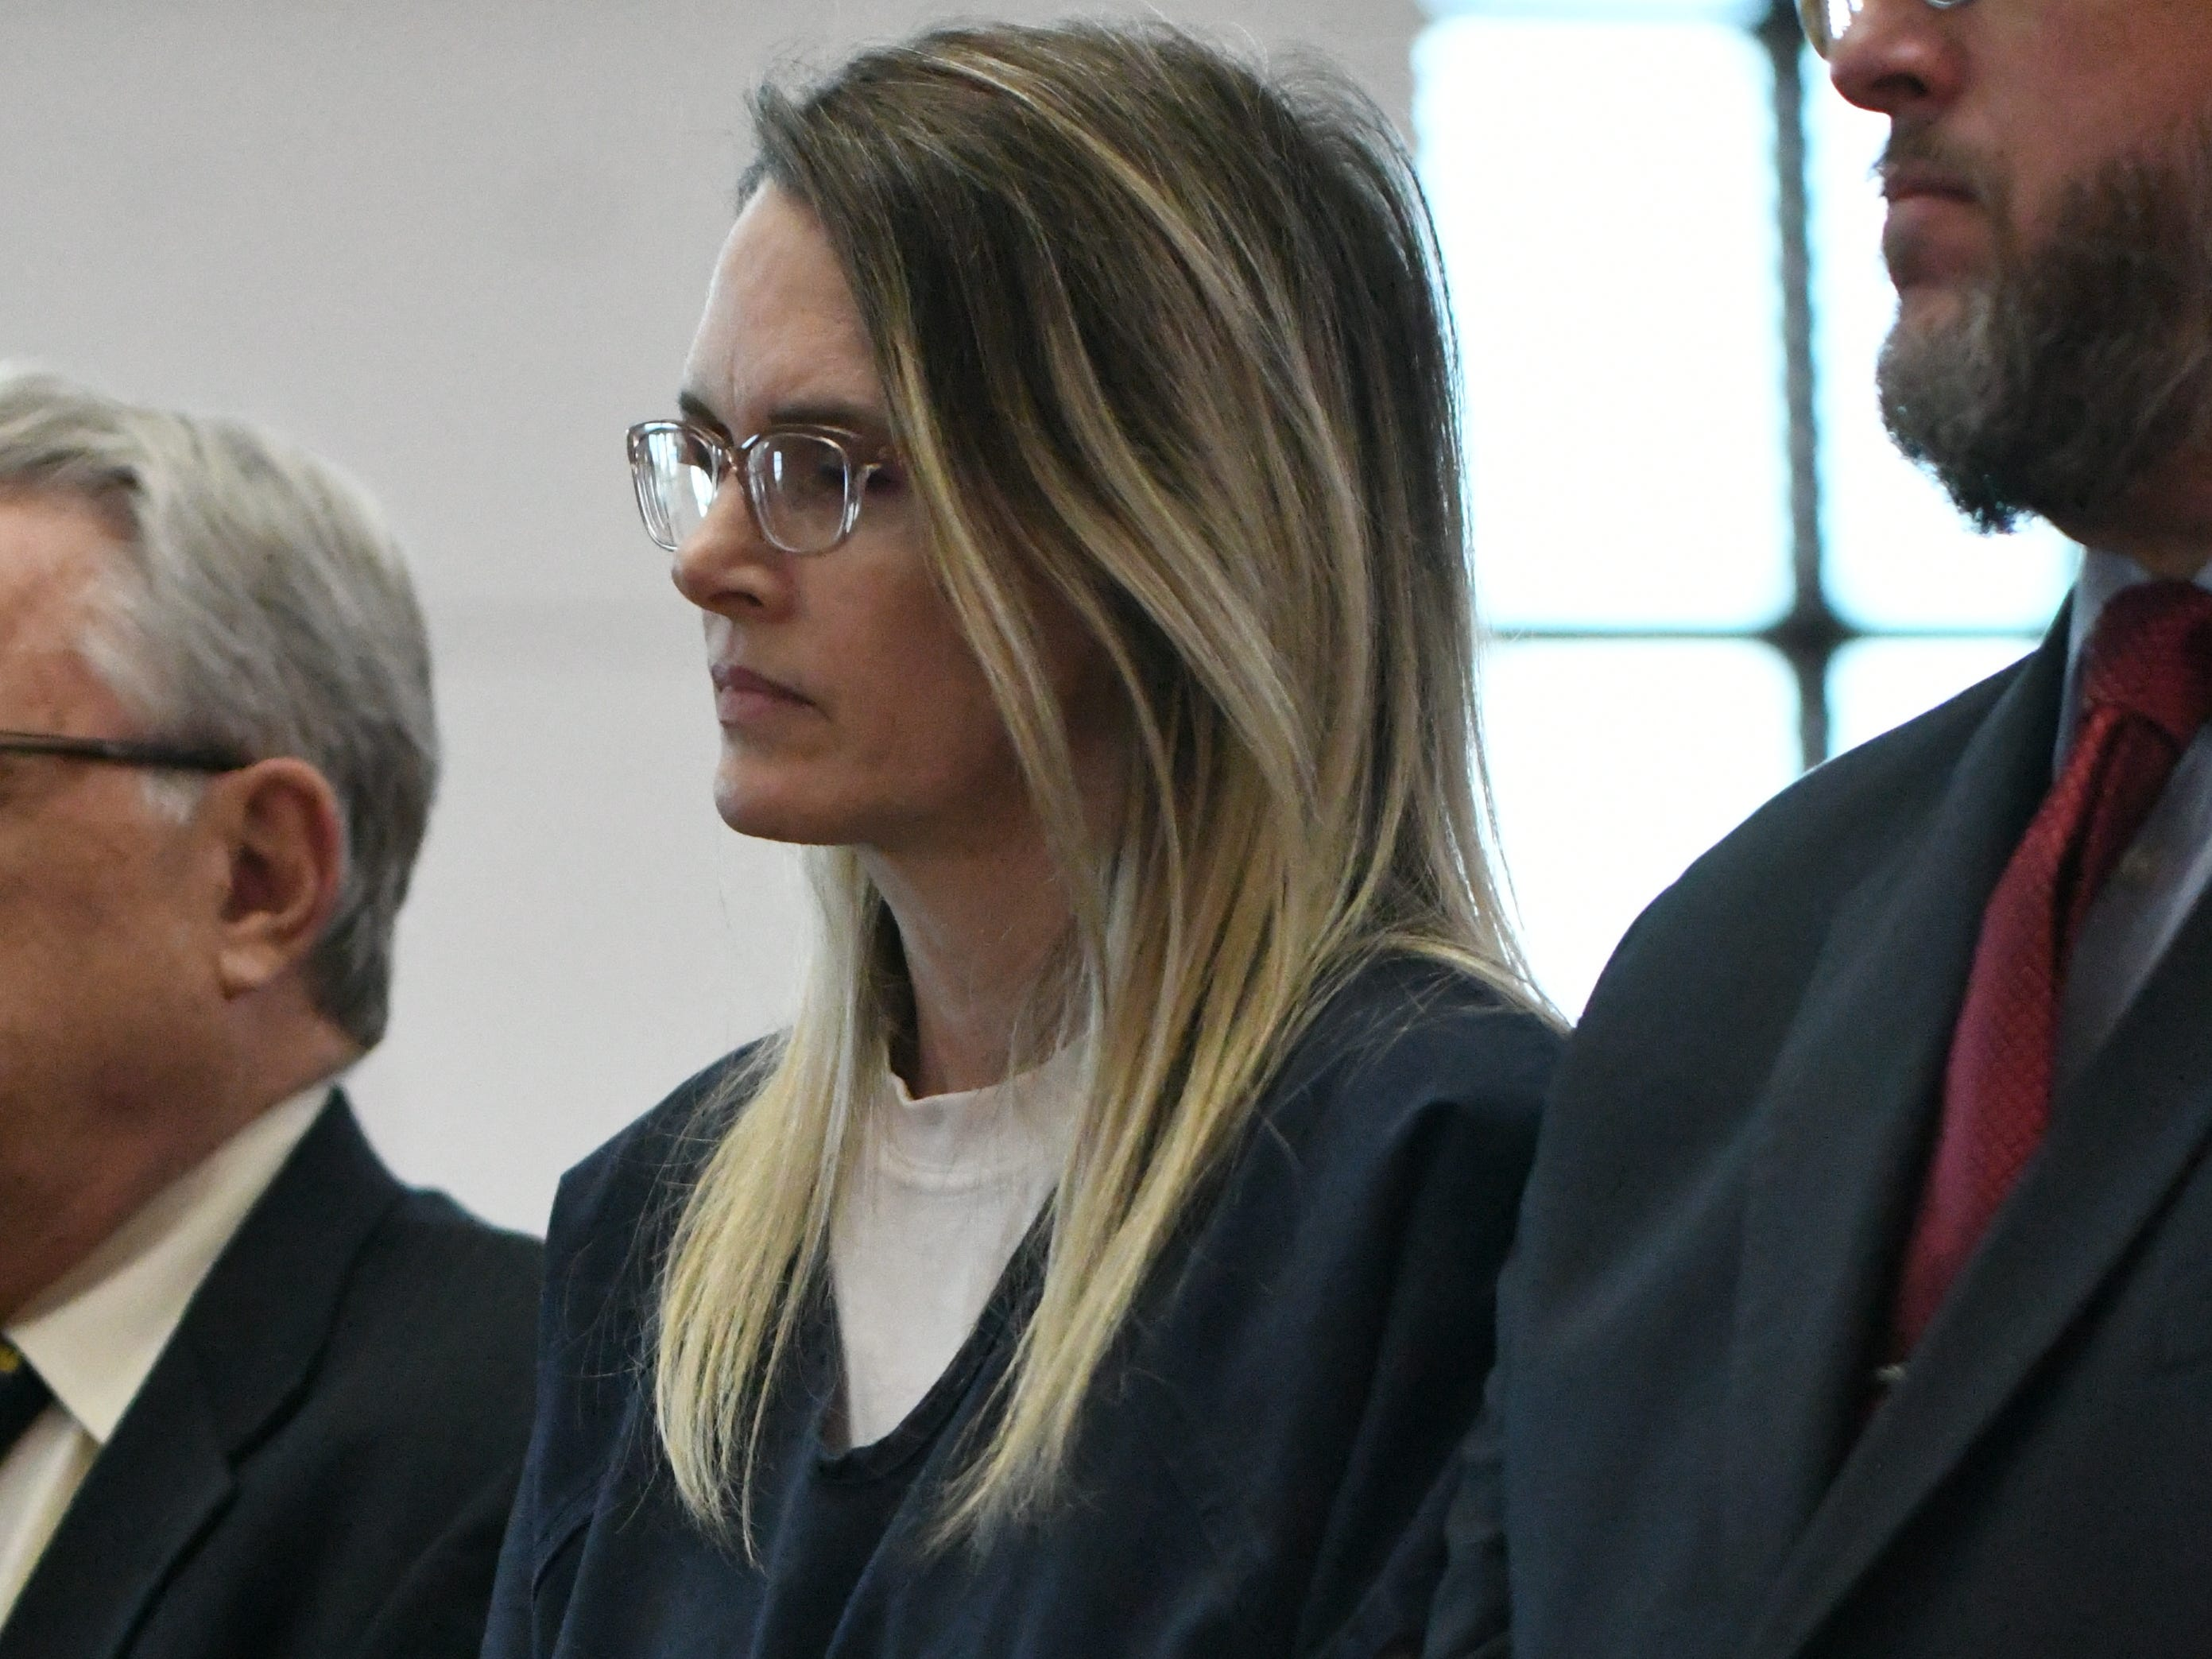 Denise Williams stands expressionless and handcuffed in front of Judge James C. Hankinson as he gives Williams her sentencing, Wednesday Feb. 6, 2019, for the murder of her husband Mike Williams. Williams was sentenced to life in prison plus 30 years.